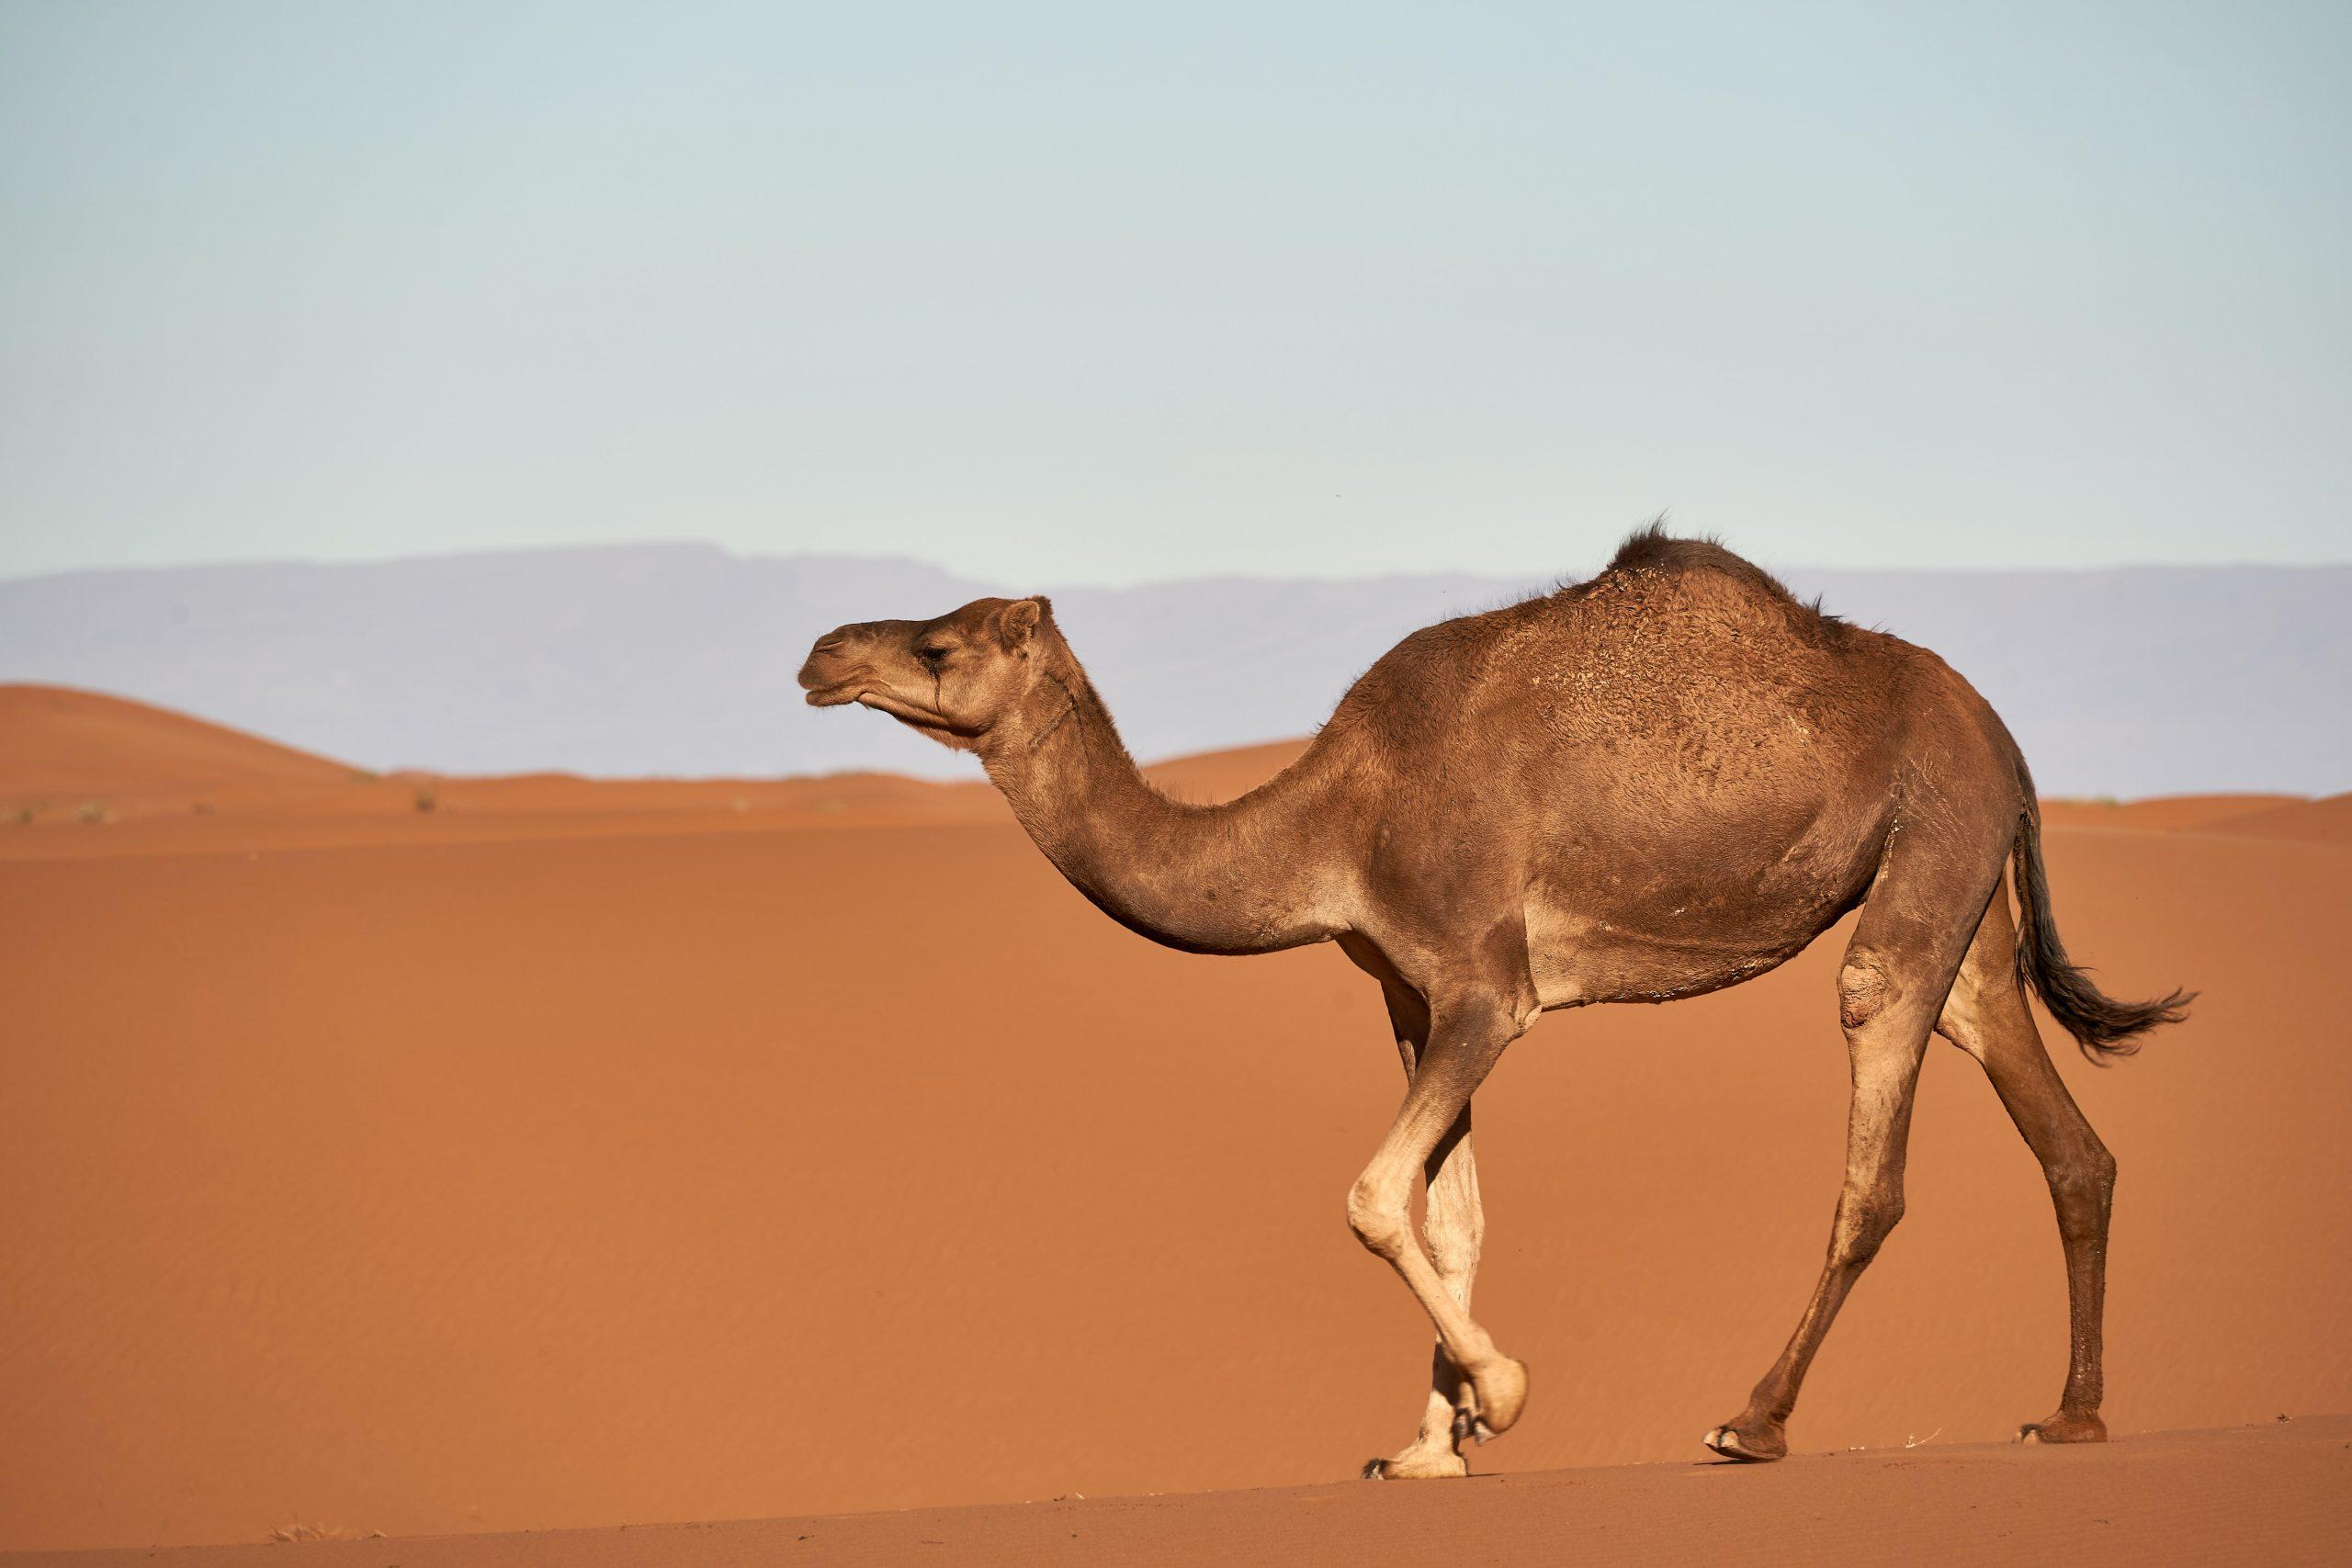 In 2021, business success belongs to camels not unicorns